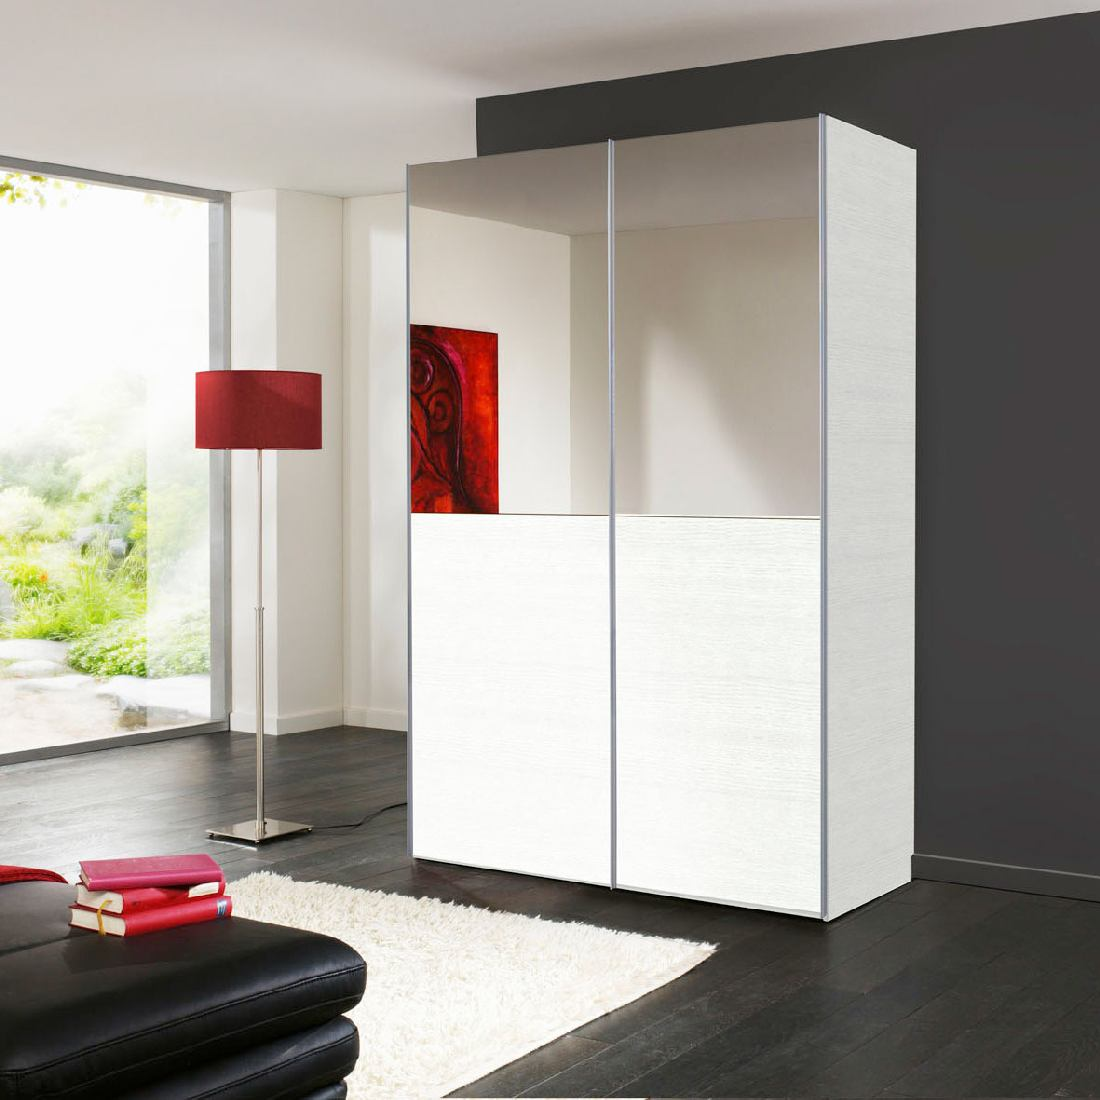 schrank mit spiegel great kiefer schrank mit spiegel trig in radeberg in dresden with schrank. Black Bedroom Furniture Sets. Home Design Ideas